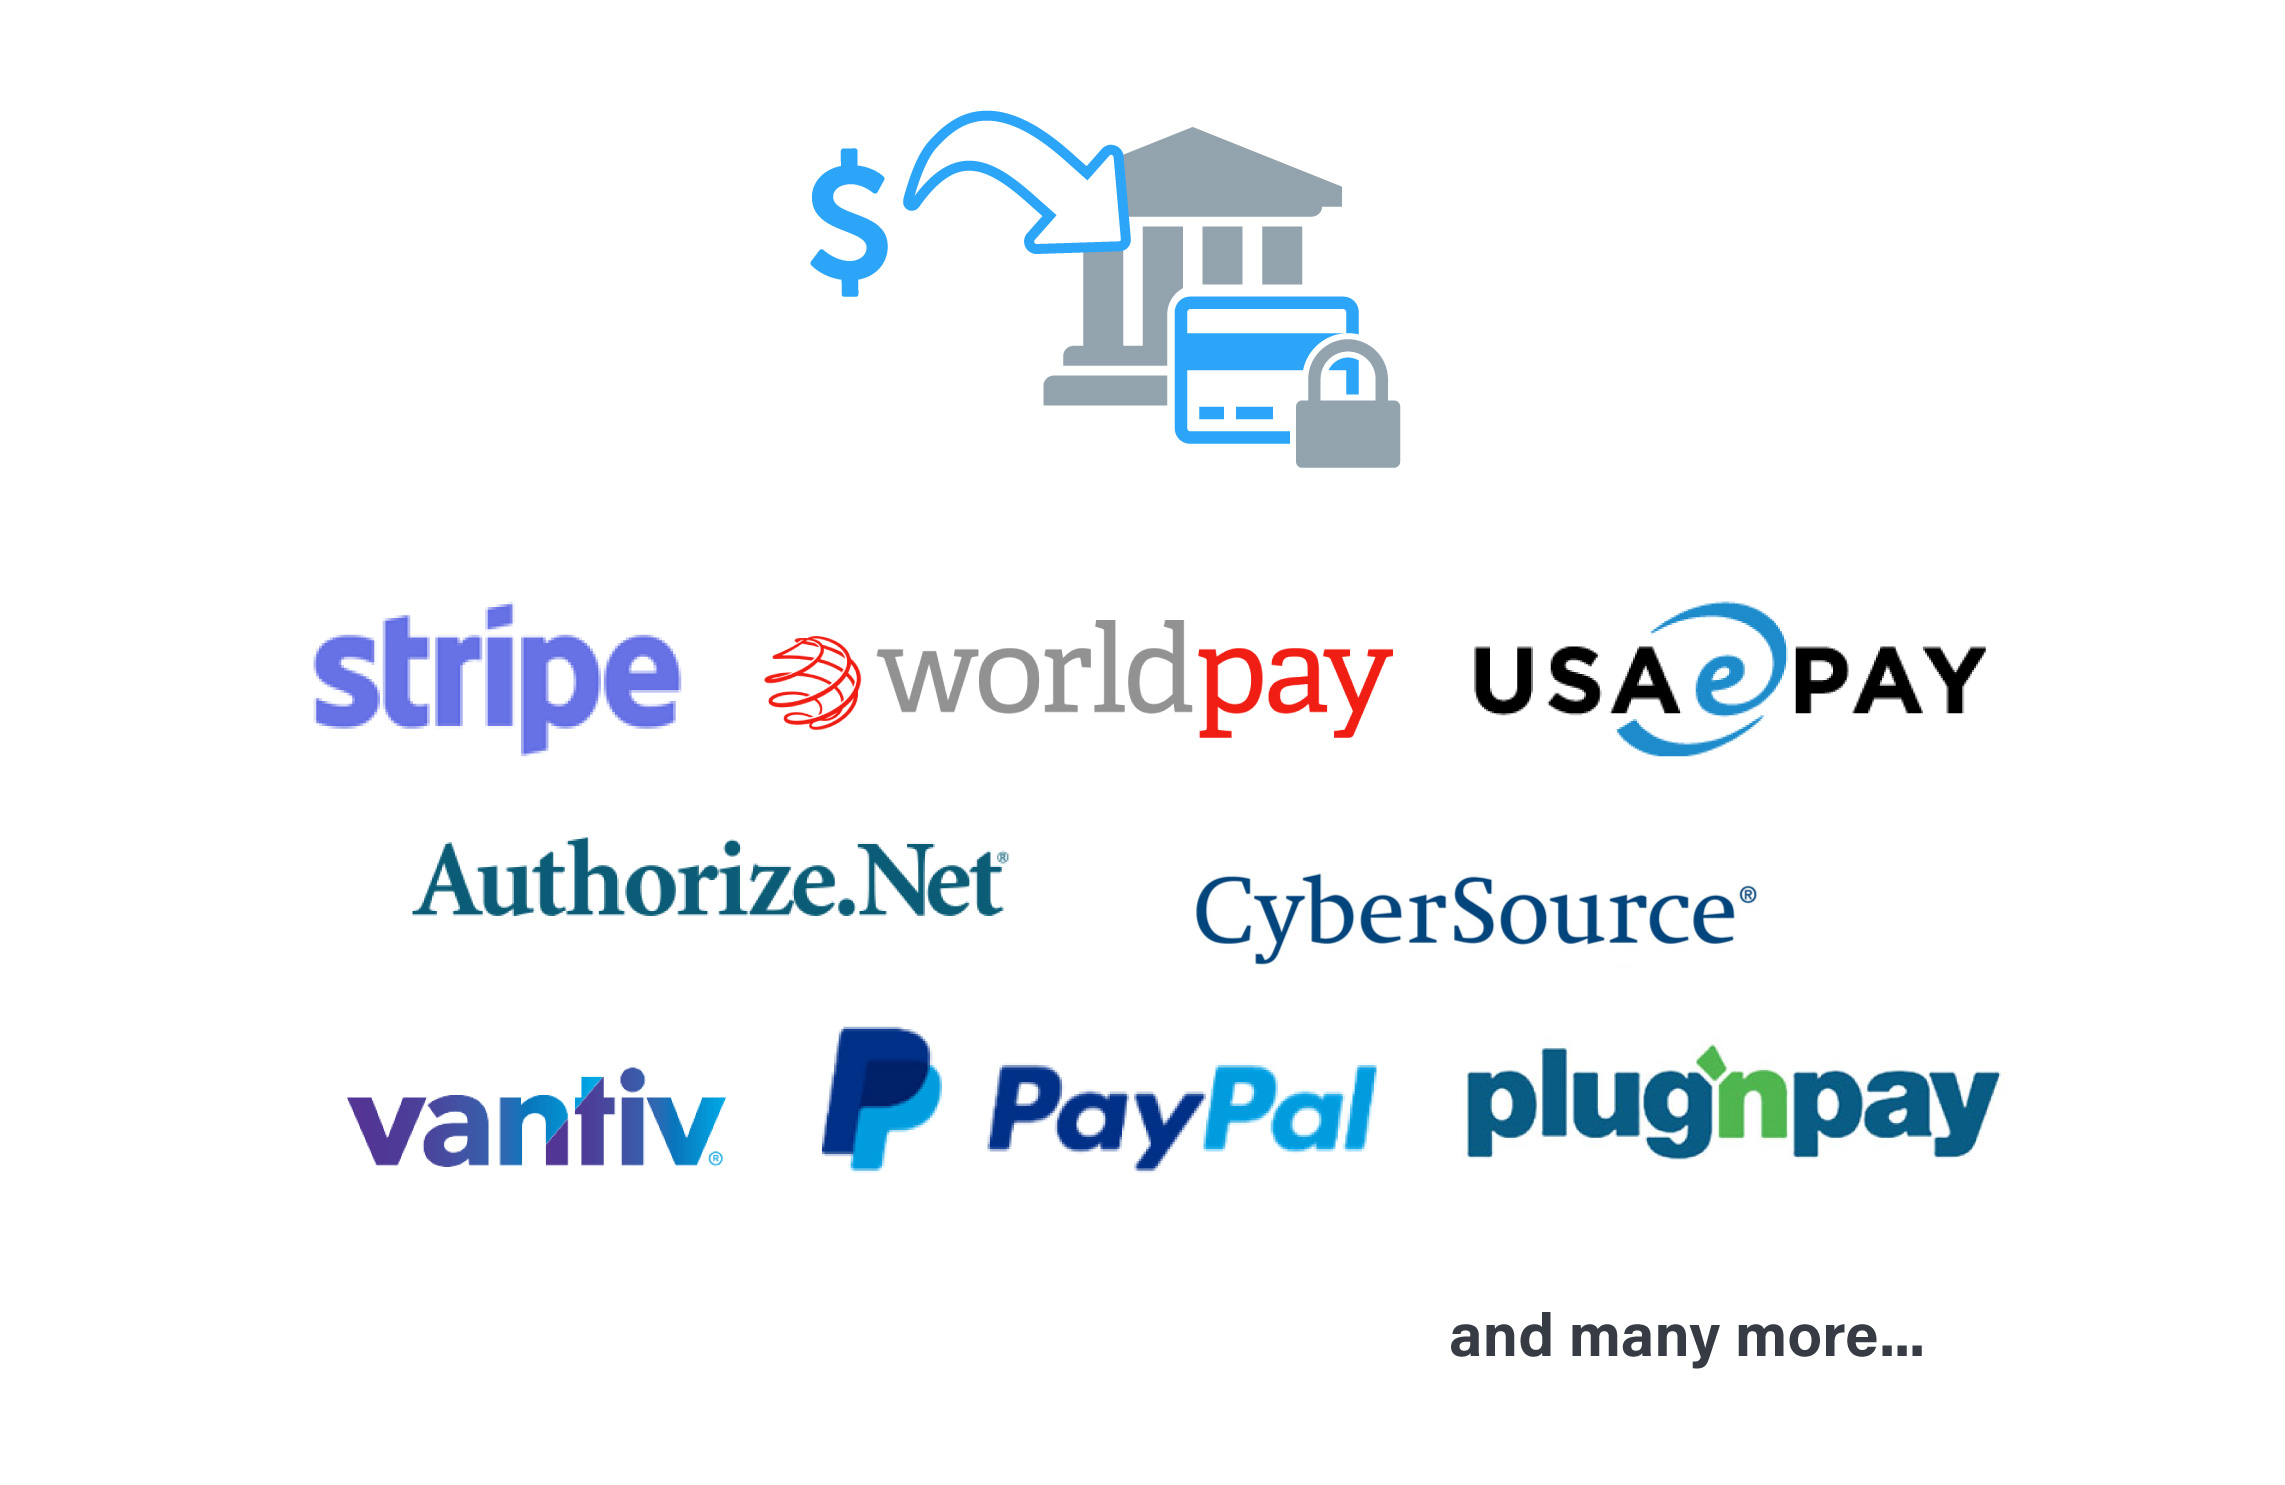 v6-Transactions-Securely-process-via-your-payment-gateway.jpg